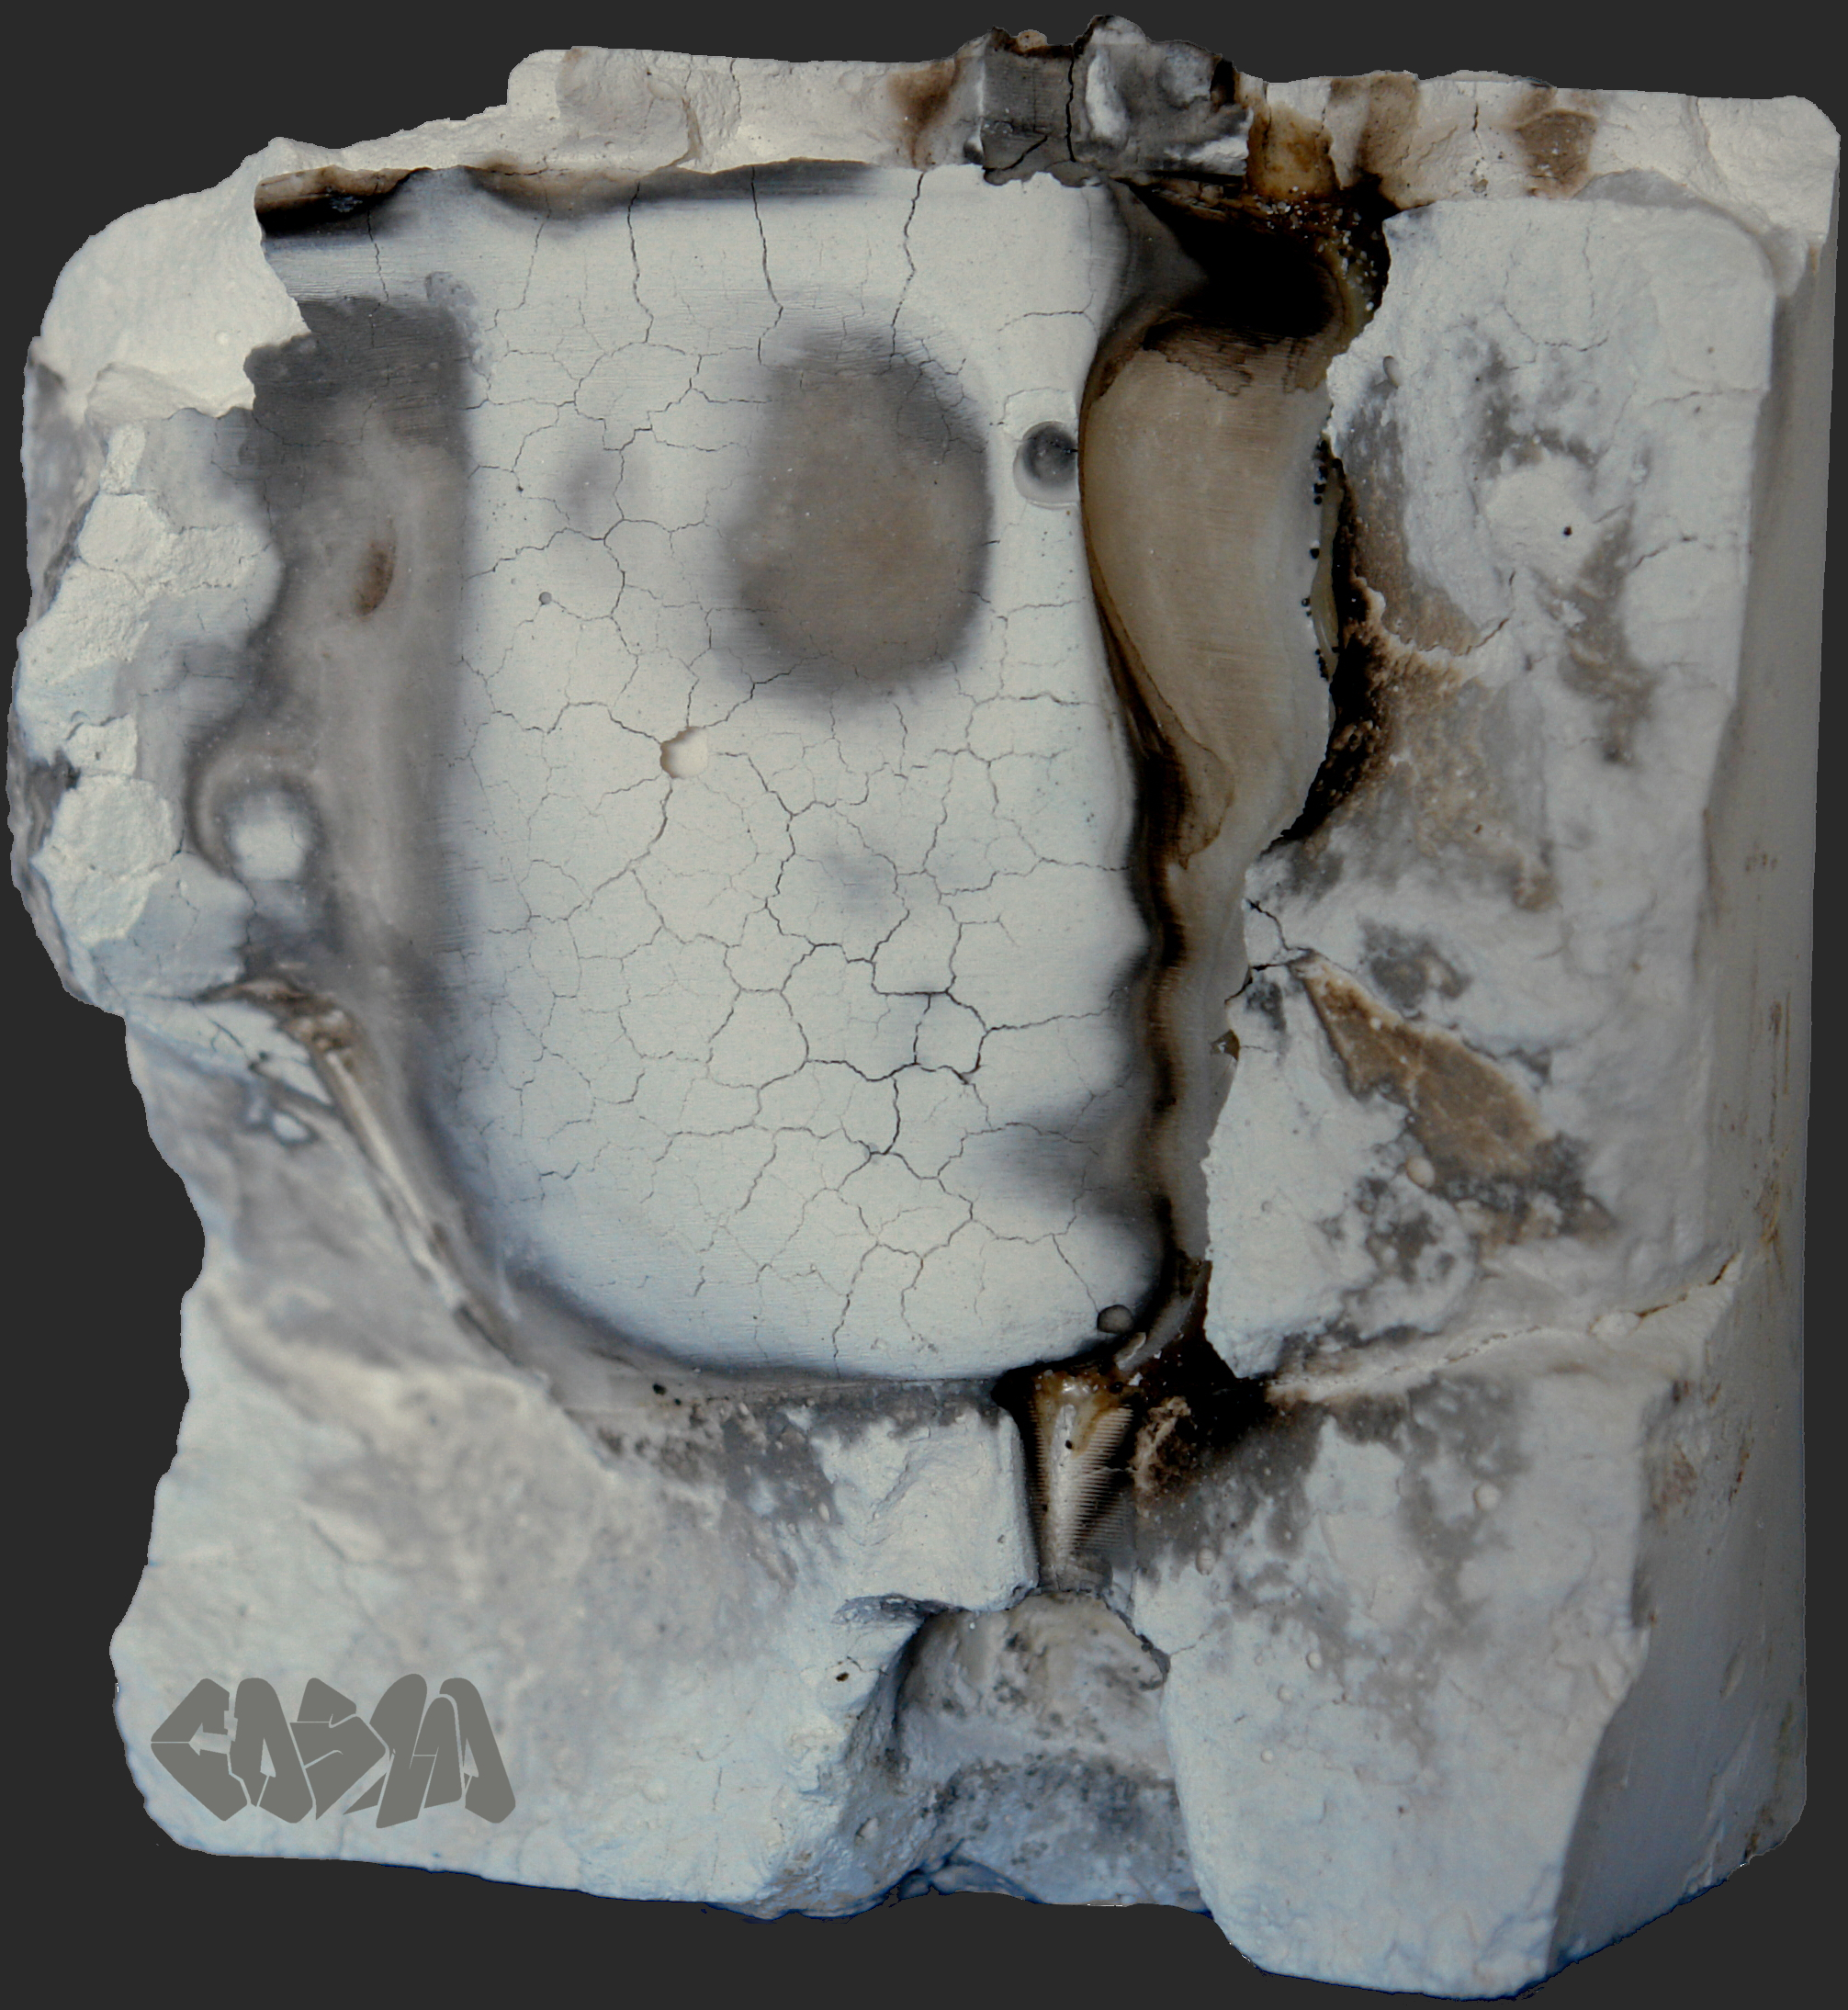 3D Scanning, 3D Printing, Bronze Casting, And The Art Of